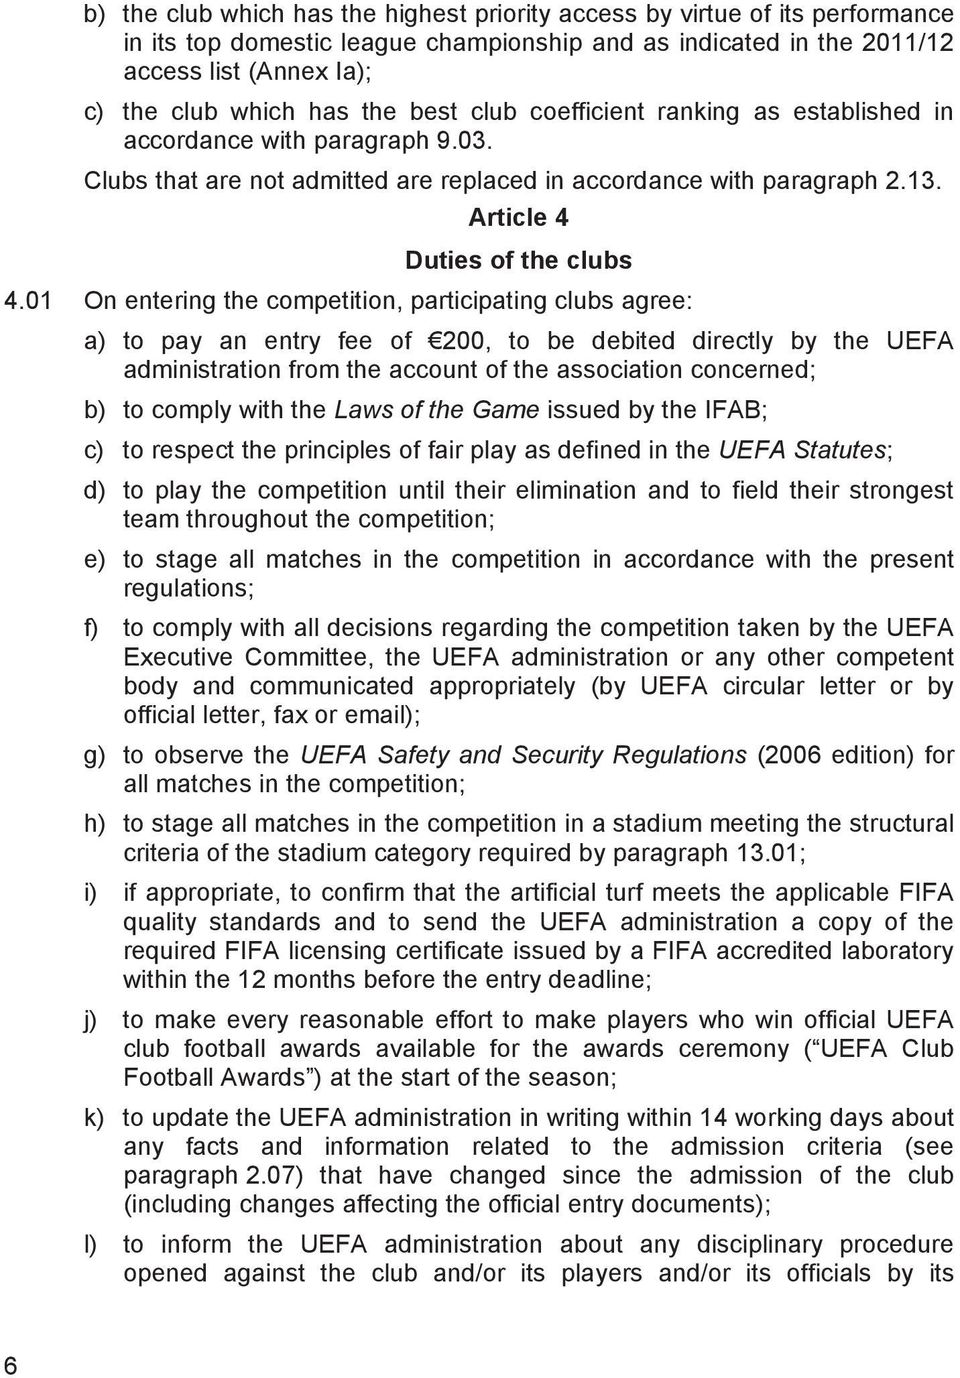 01 On entering the competition, participating clubs agree: a) to pay an entry fee of 200, to be debited directly by the UEFA administration from the account of the association concerned; b) to comply